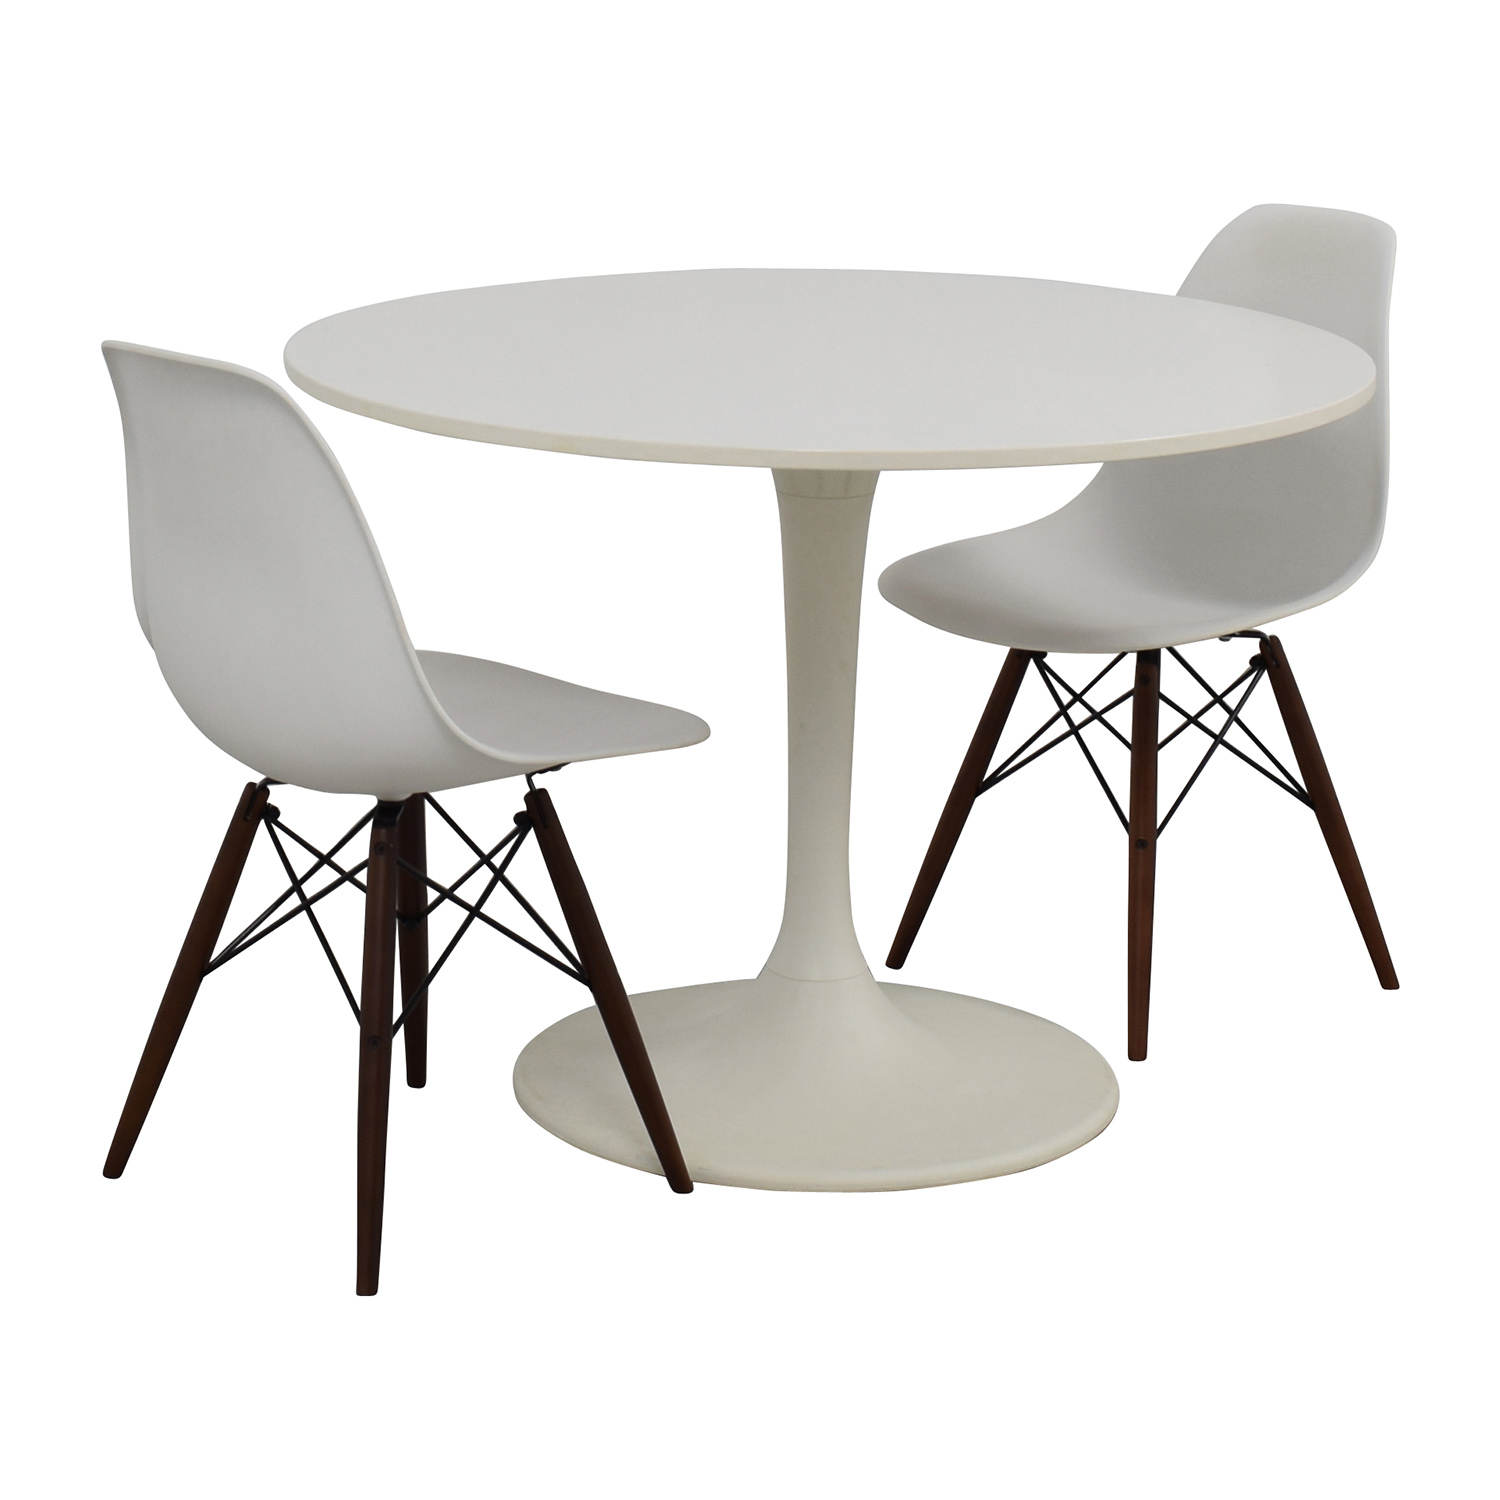 OFF Vortex Tulip Table And Vortex Chair Set Tables - Tulip chair and table set